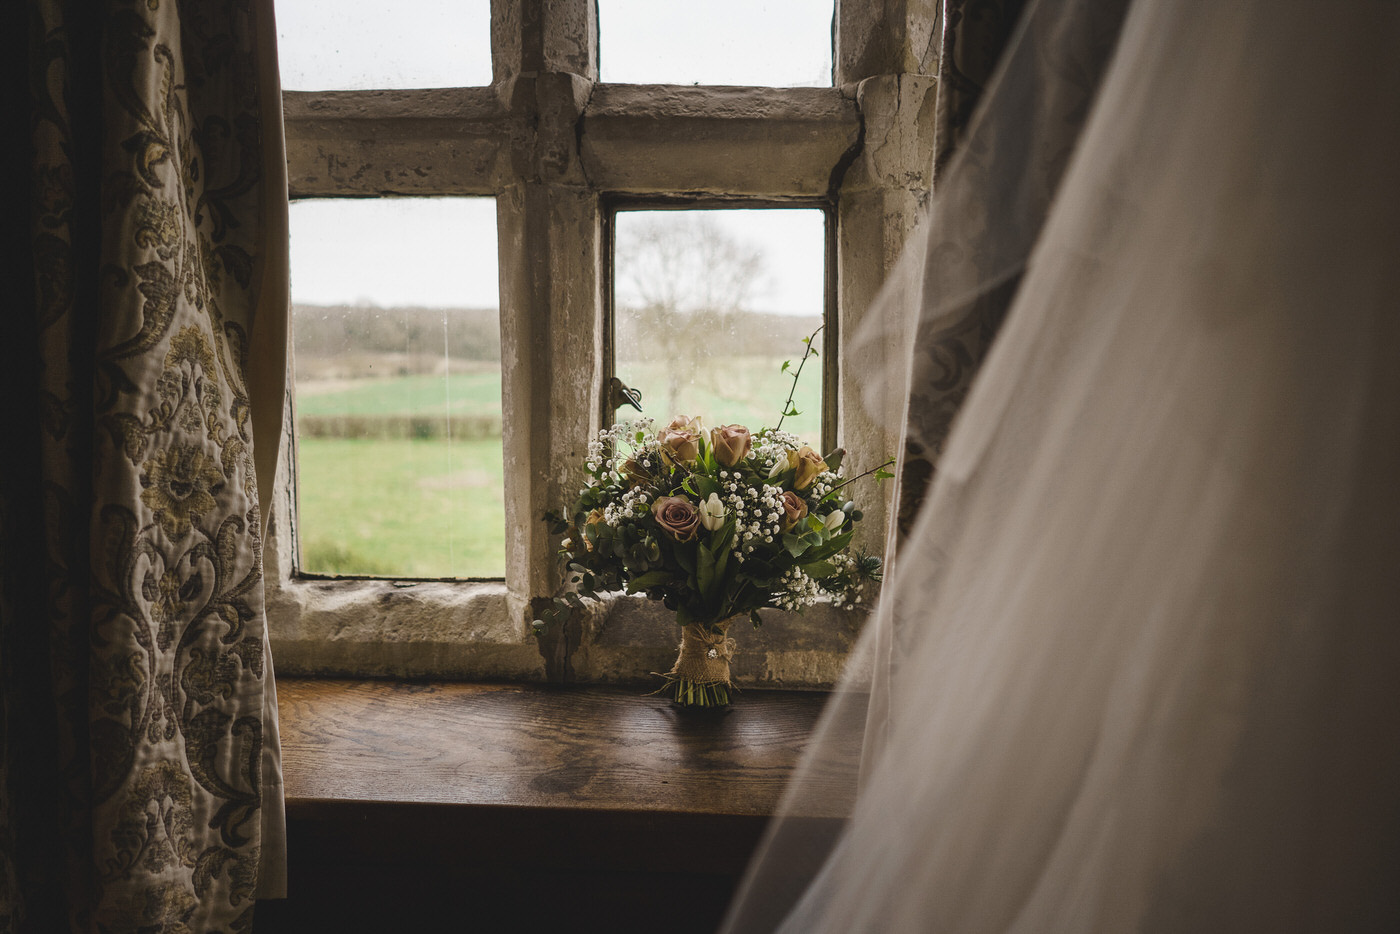 Bridal flowers on a window sill at soulton hall in shropshire